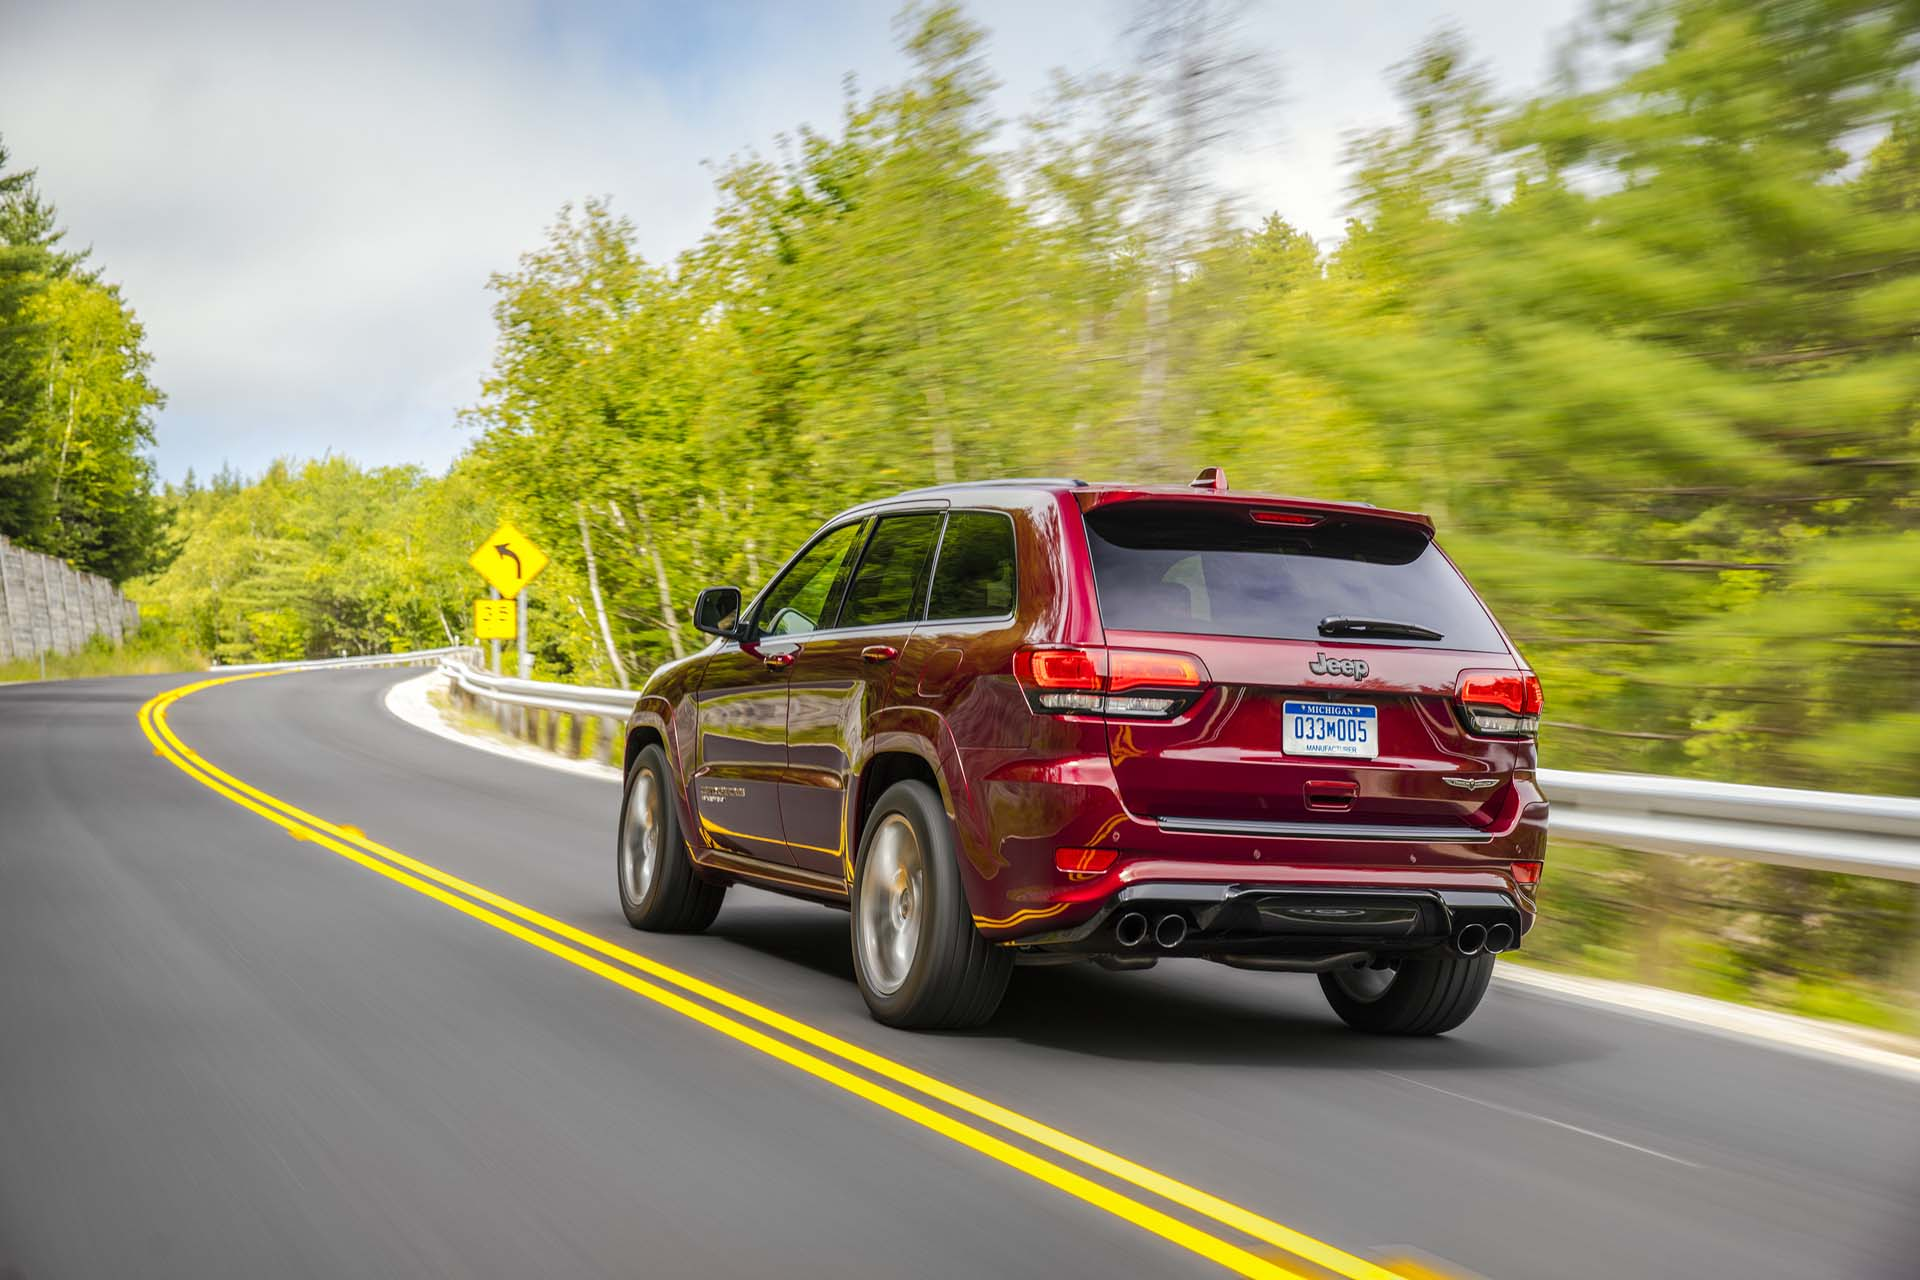 Jeep Cherokee Third Row >> 3 Row Jeep Grand Cherokee Will Reportedly Be Built At Idled Detroit